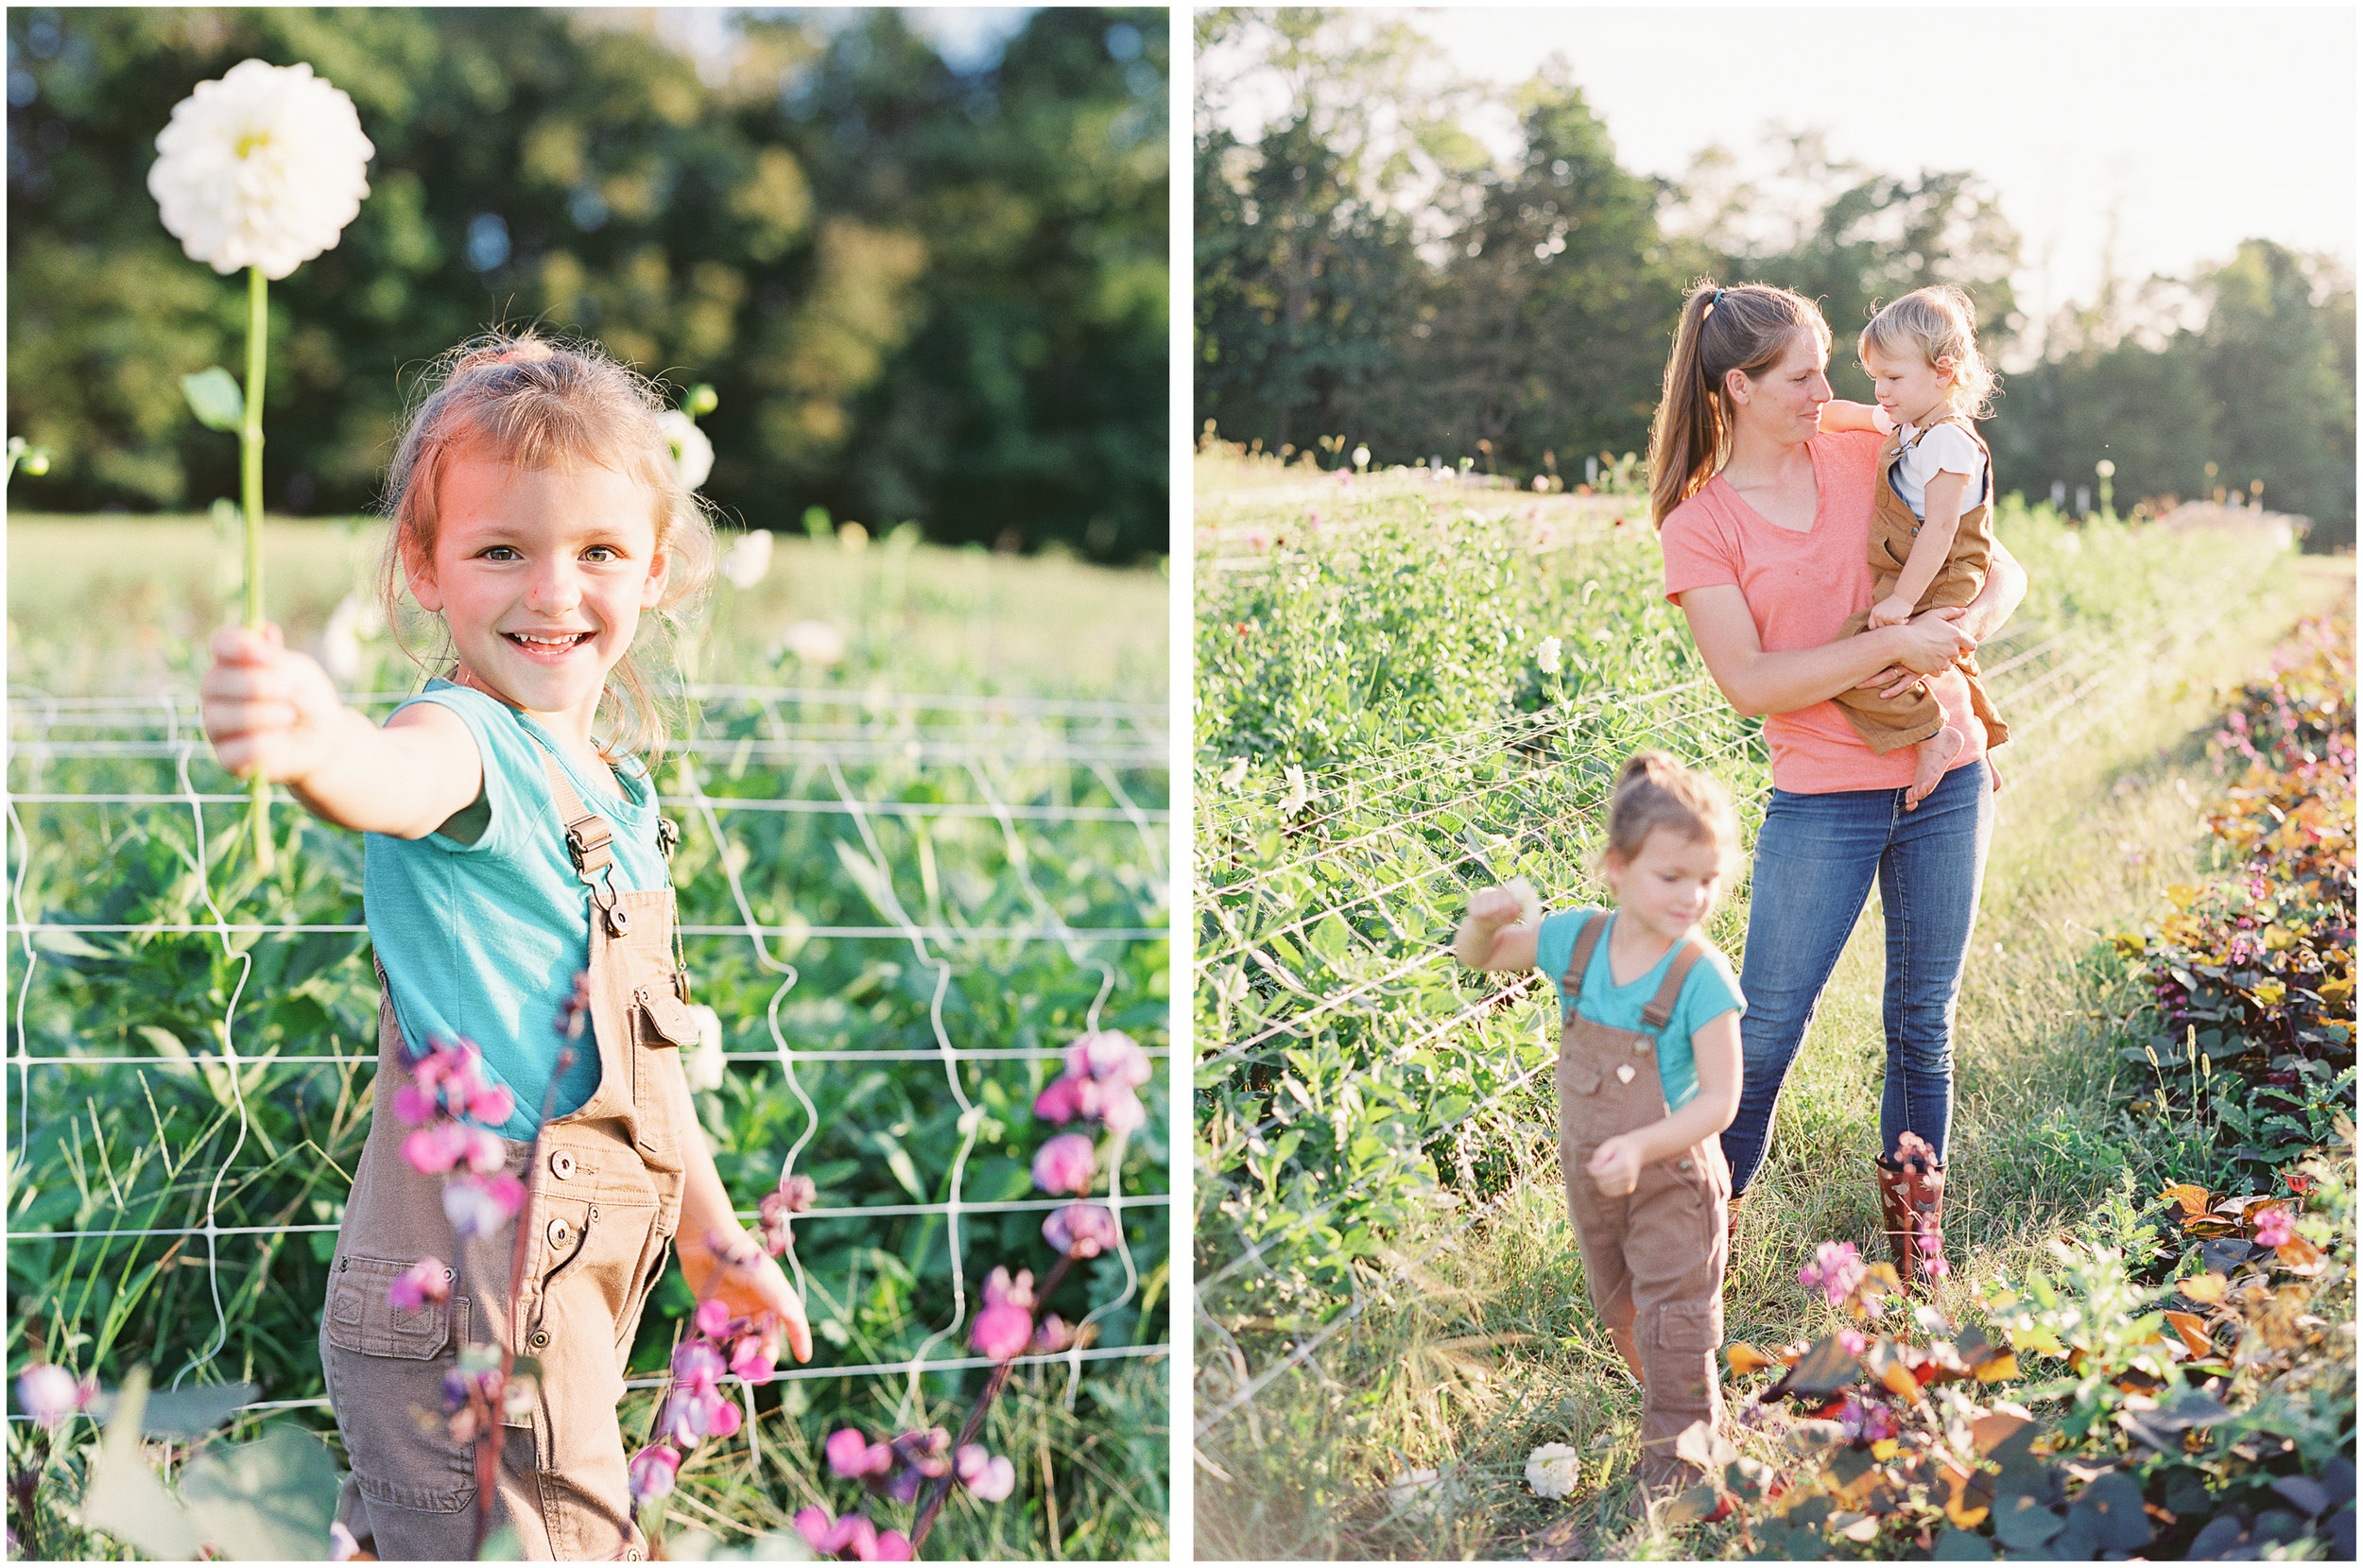 goosecreek-gardens-floral-company-pittsburgh-family-lifestyle-photographer-anna-laero-photography-6.jpg